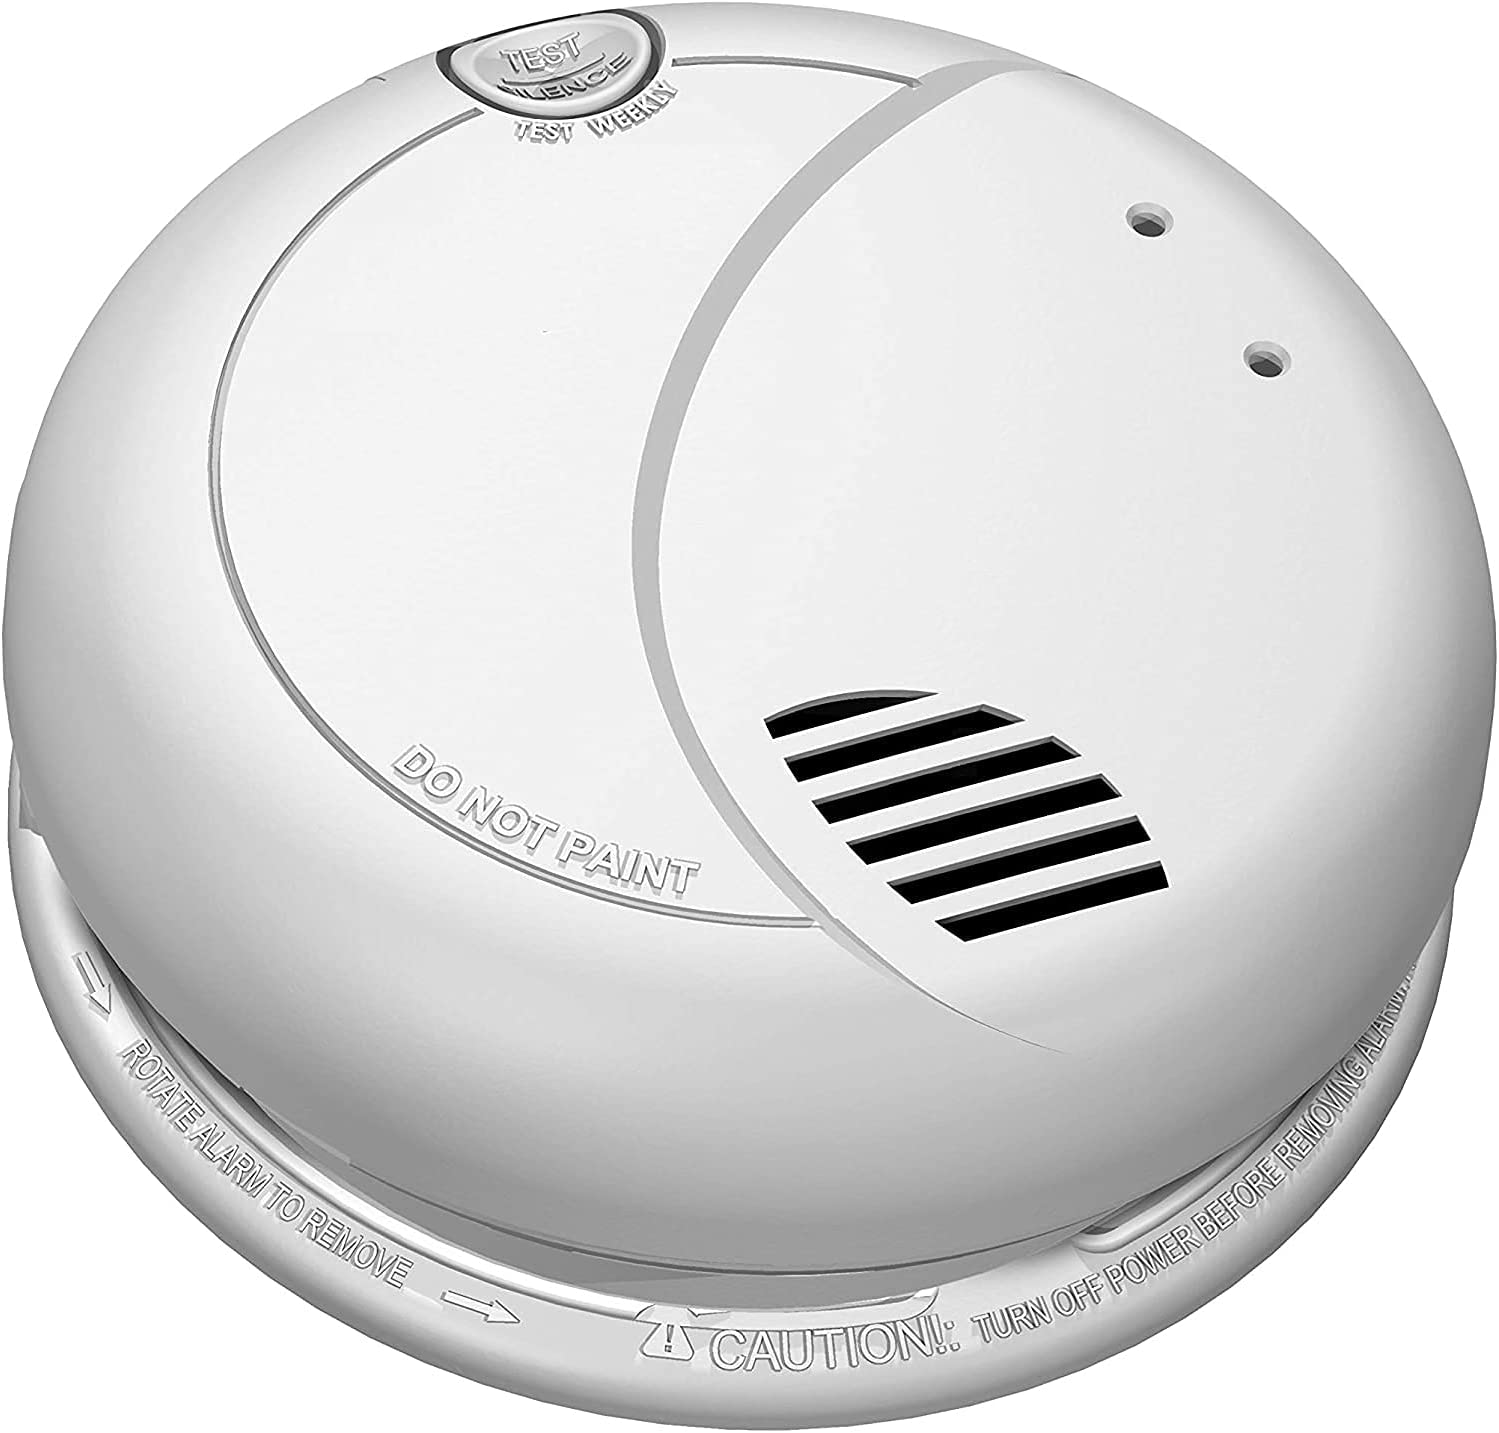 1080P New life True Full HD Battery Powered Detector Smoke Alarm WiFi IP safety